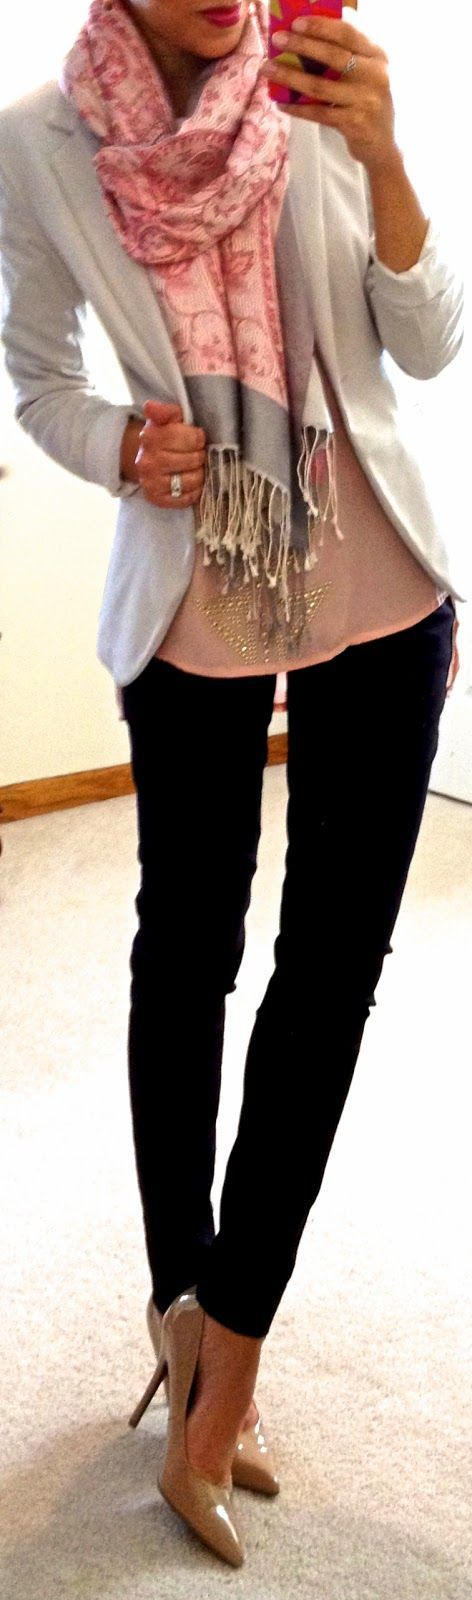 Stitch fix stylist: minus the unnecessary shoes (I'm more into wedges or boots), this is a go-to teaching outfit for me.